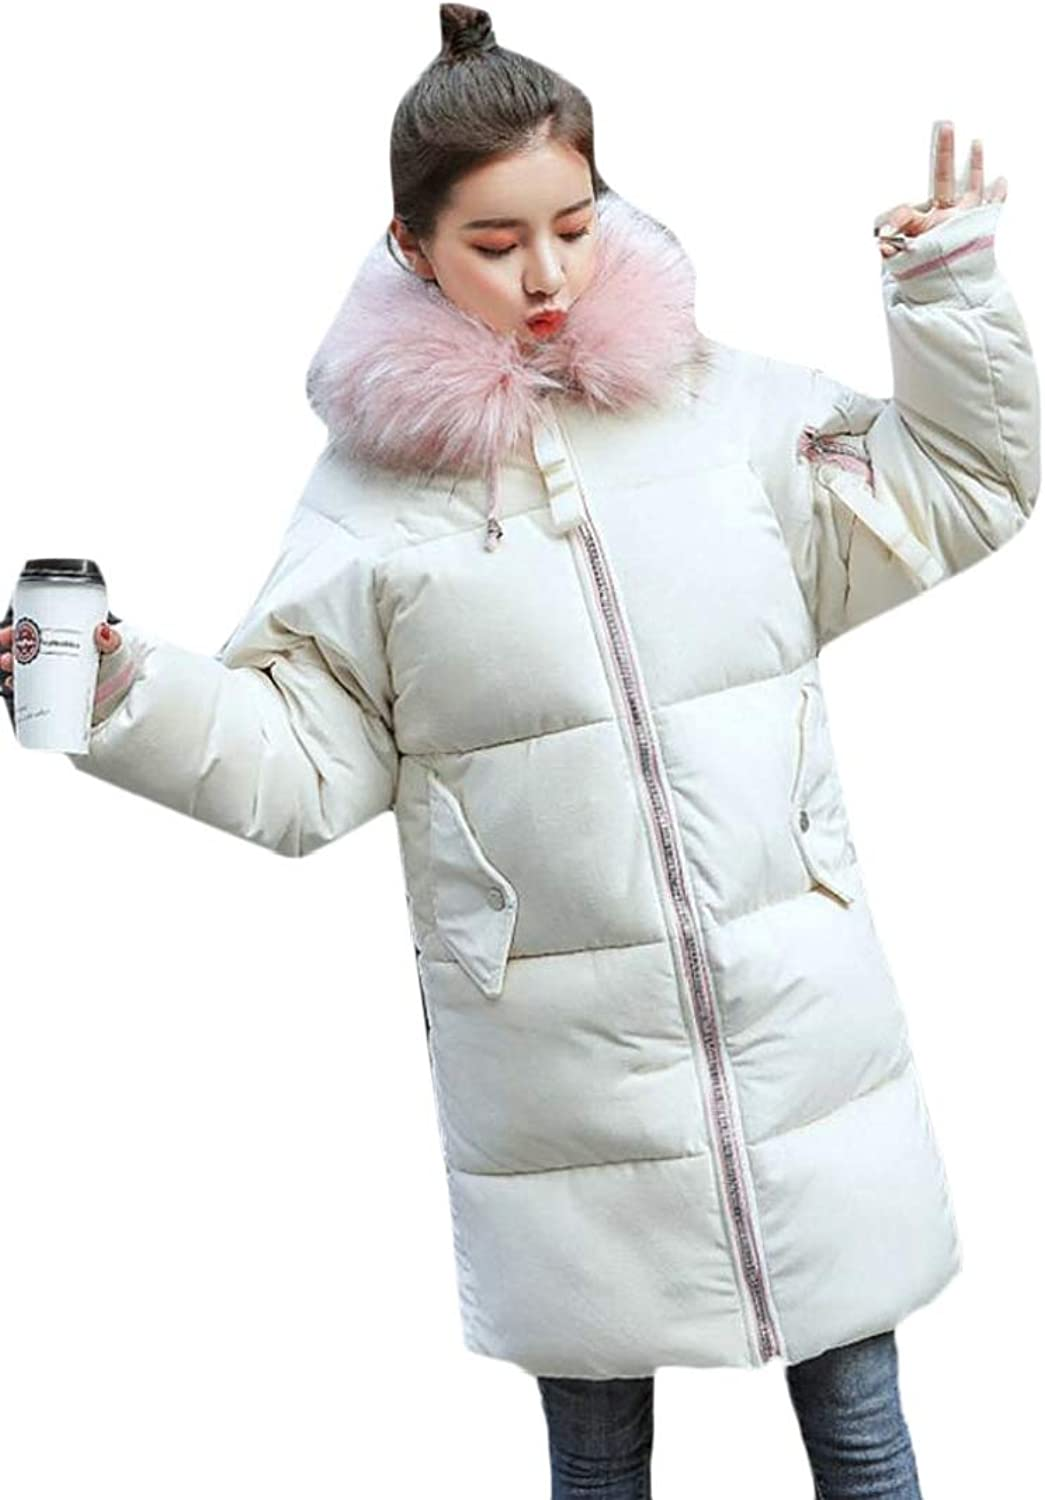 Maweisong Women Casual Faux Fur Hooded Warm Thick Down Jacket Puffer Coats